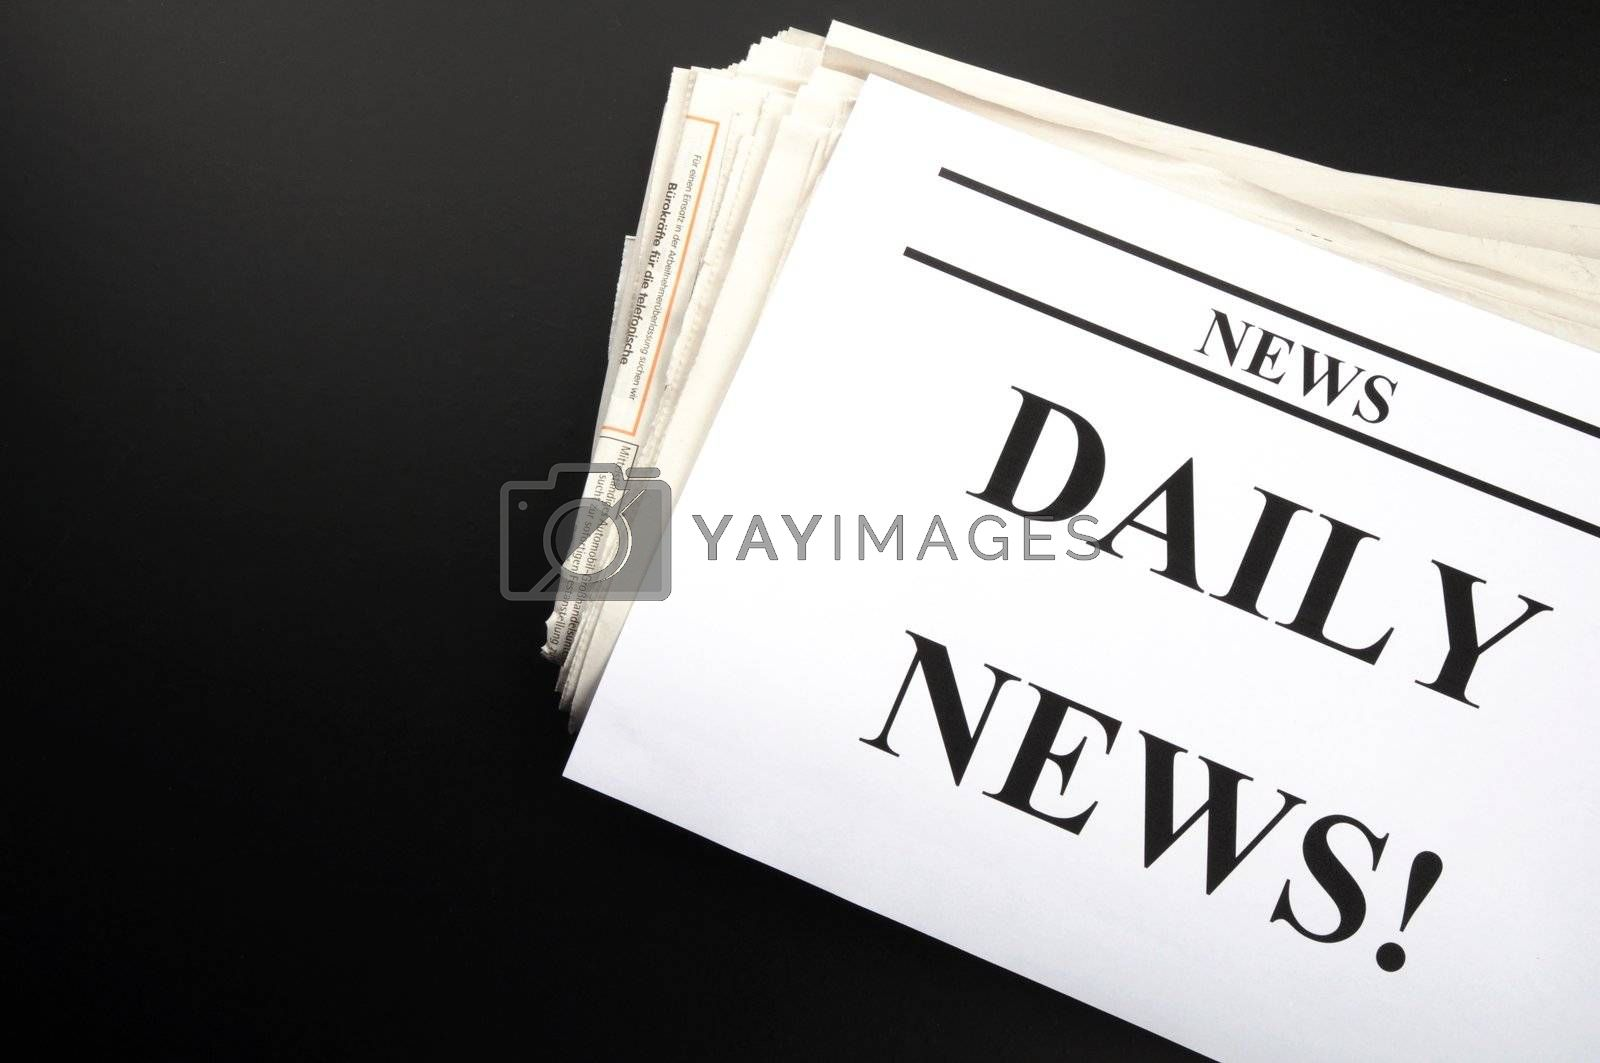 newspaper newsletter or news concept with pile of papers